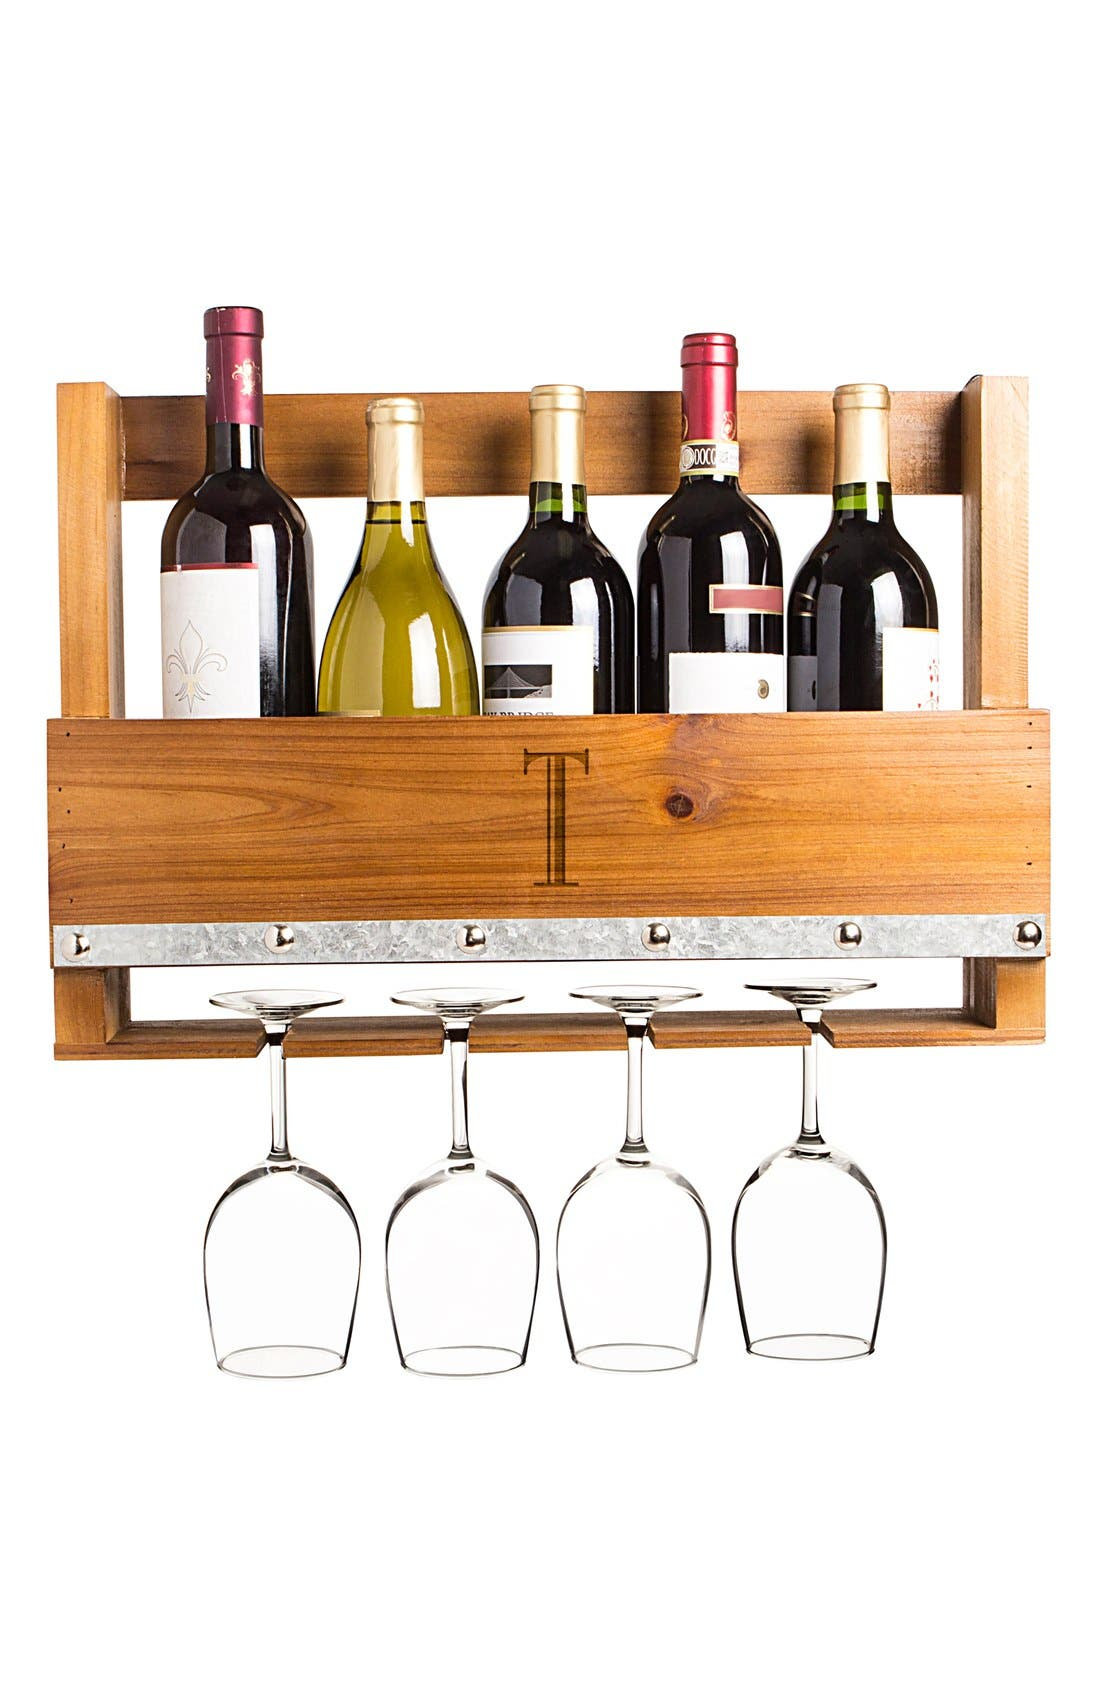 Cathy's Concepts Personalized Rustic Wall Wine Rack & Glass Holder